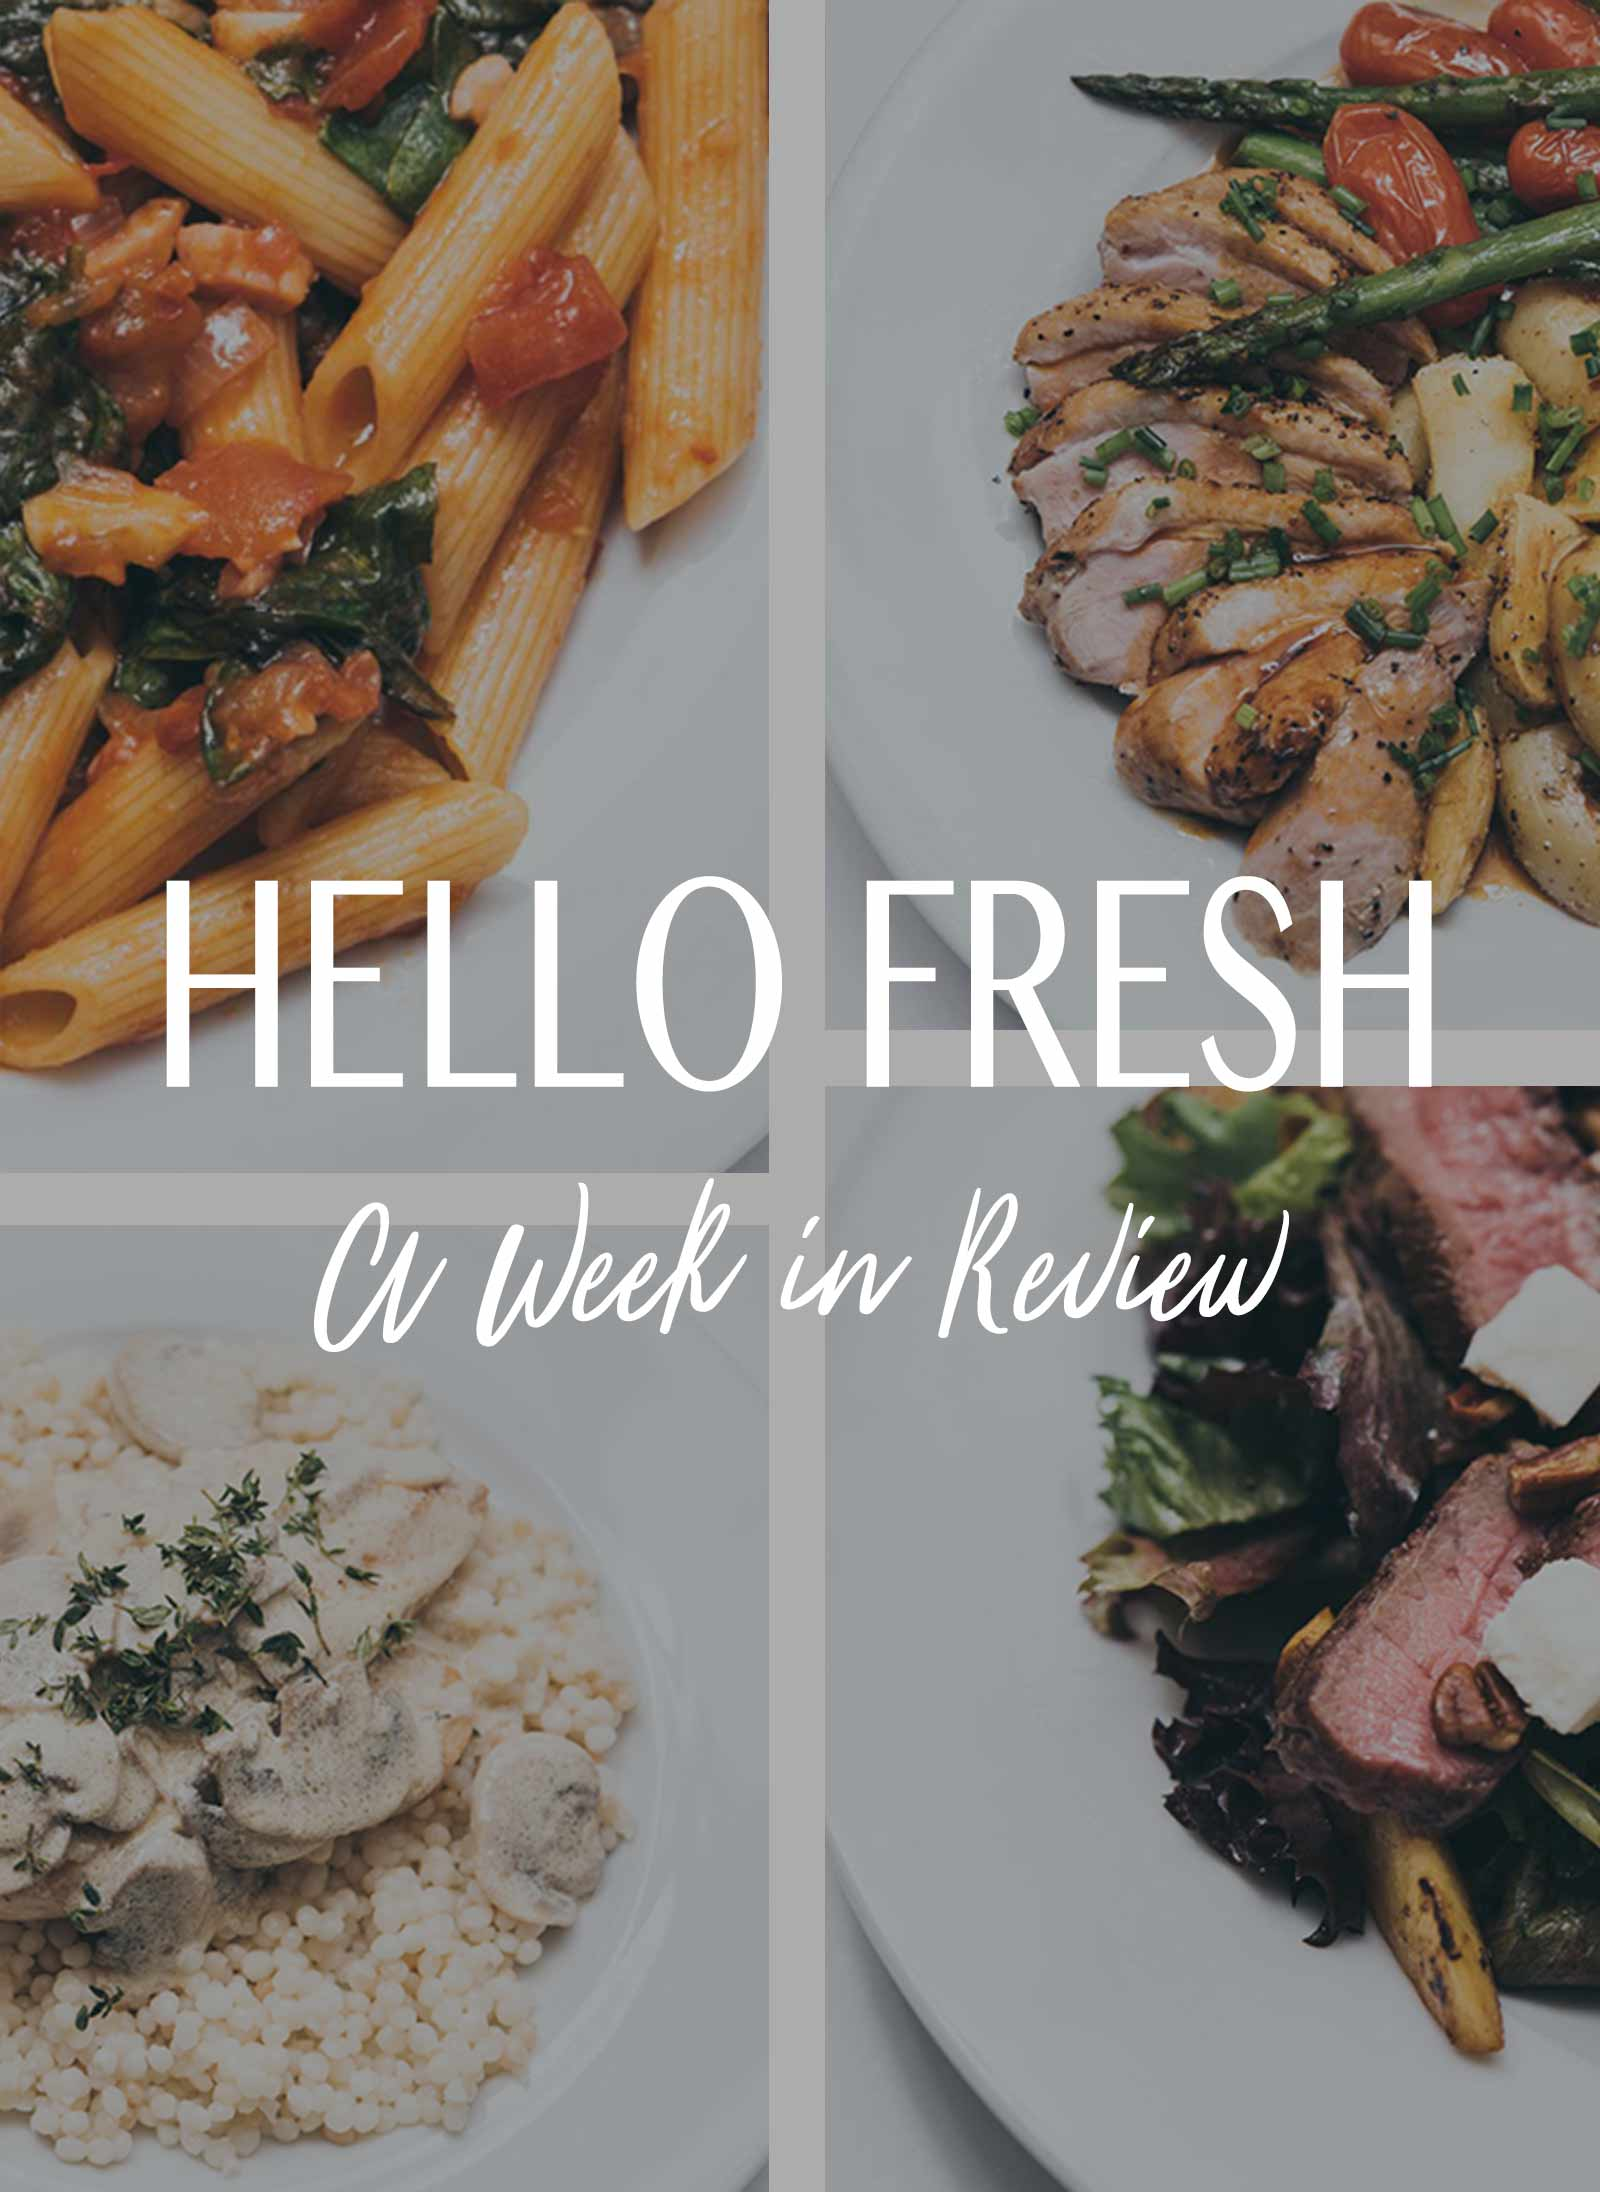 Black Market Meal Kit Delivery Service  Hellofresh